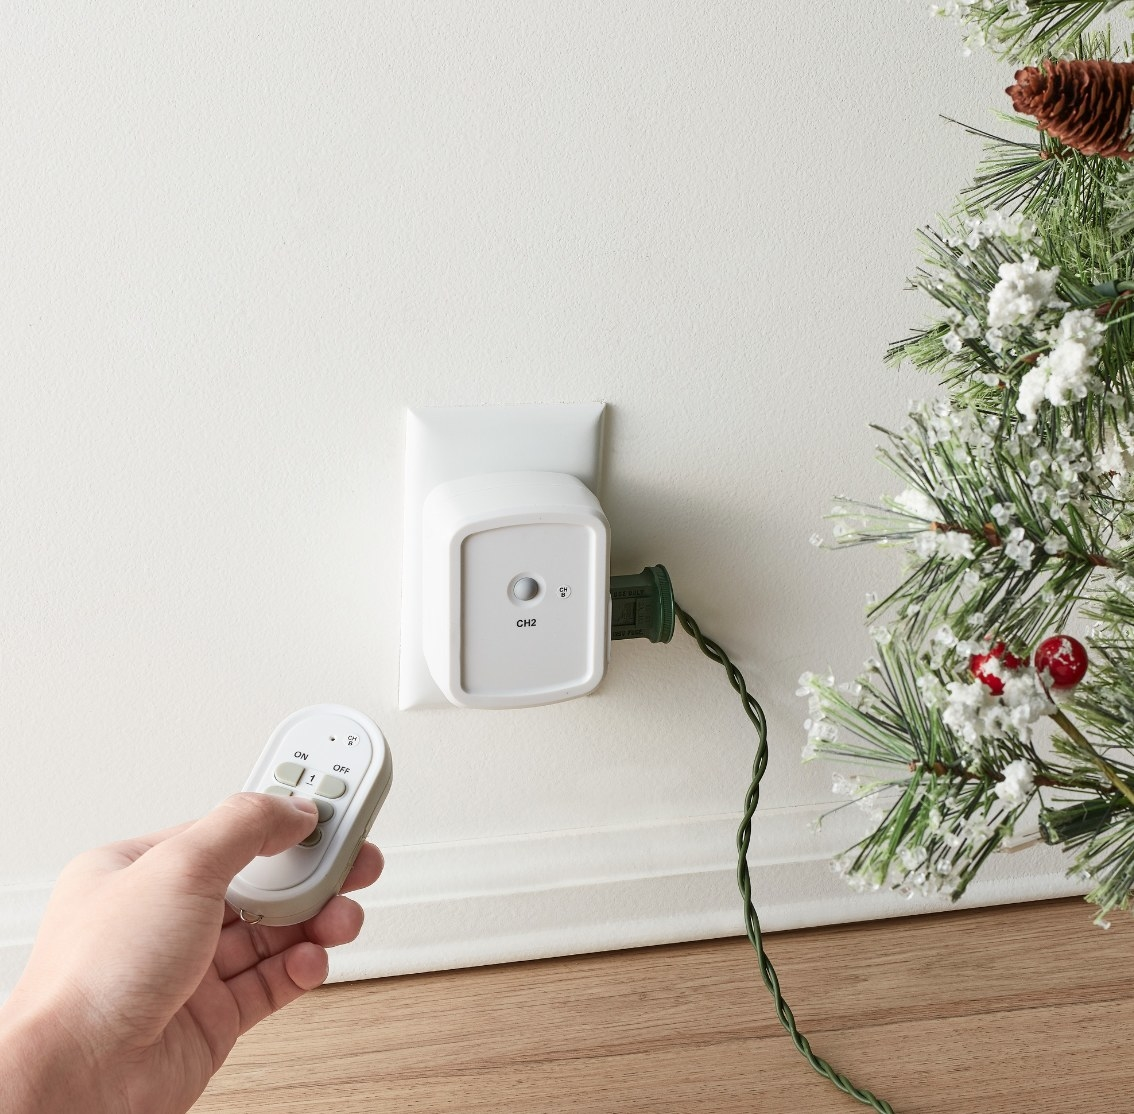 The wireless outlet and remote